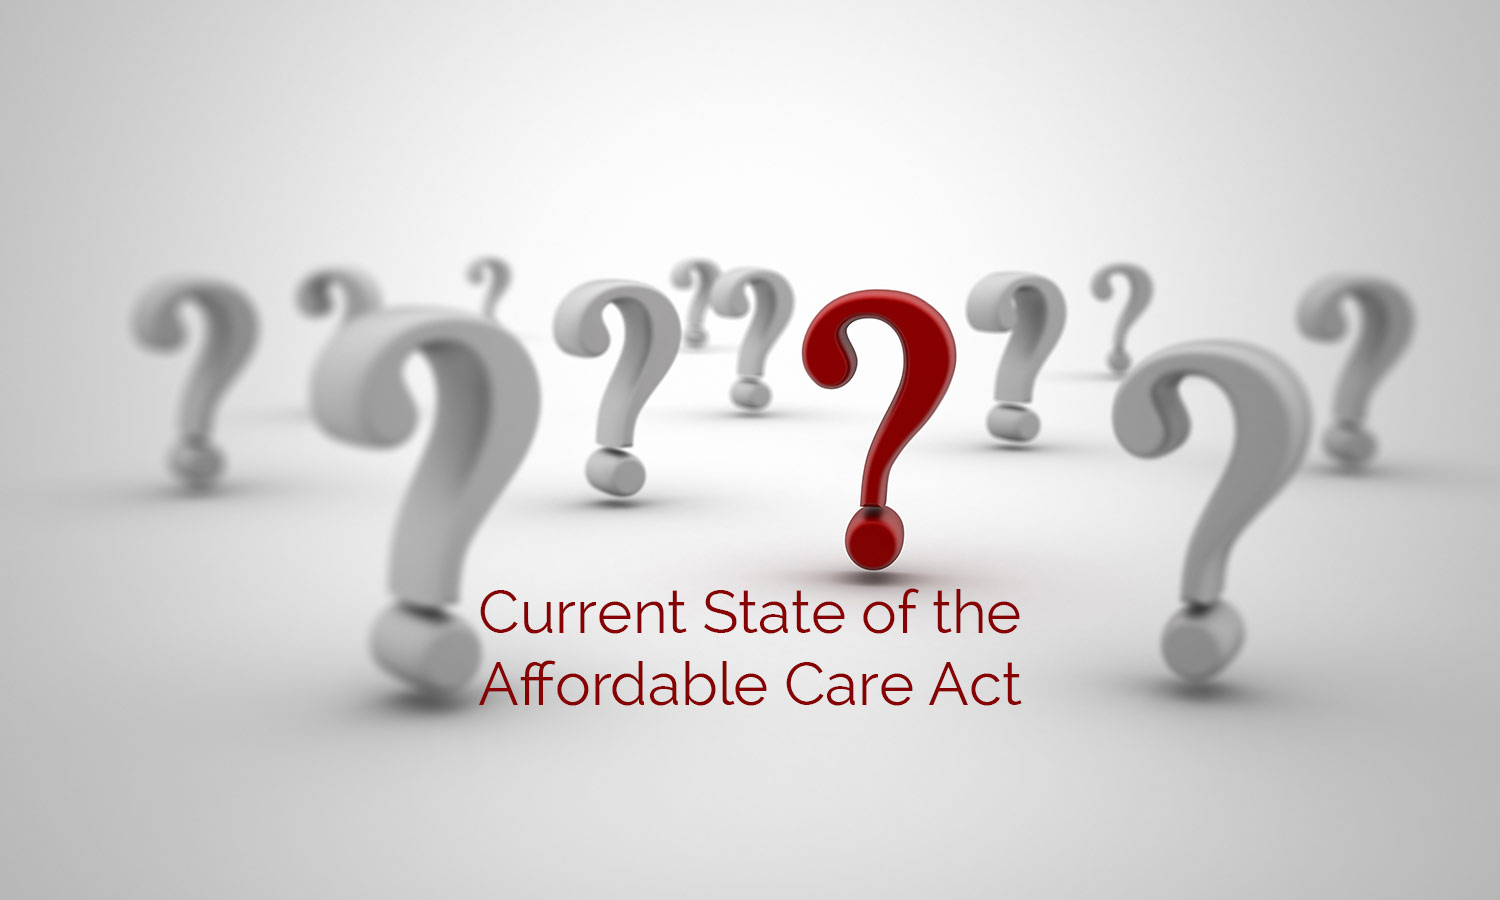 Current-State-of-the-Affordable-Care-Act-aug 2017.jpg